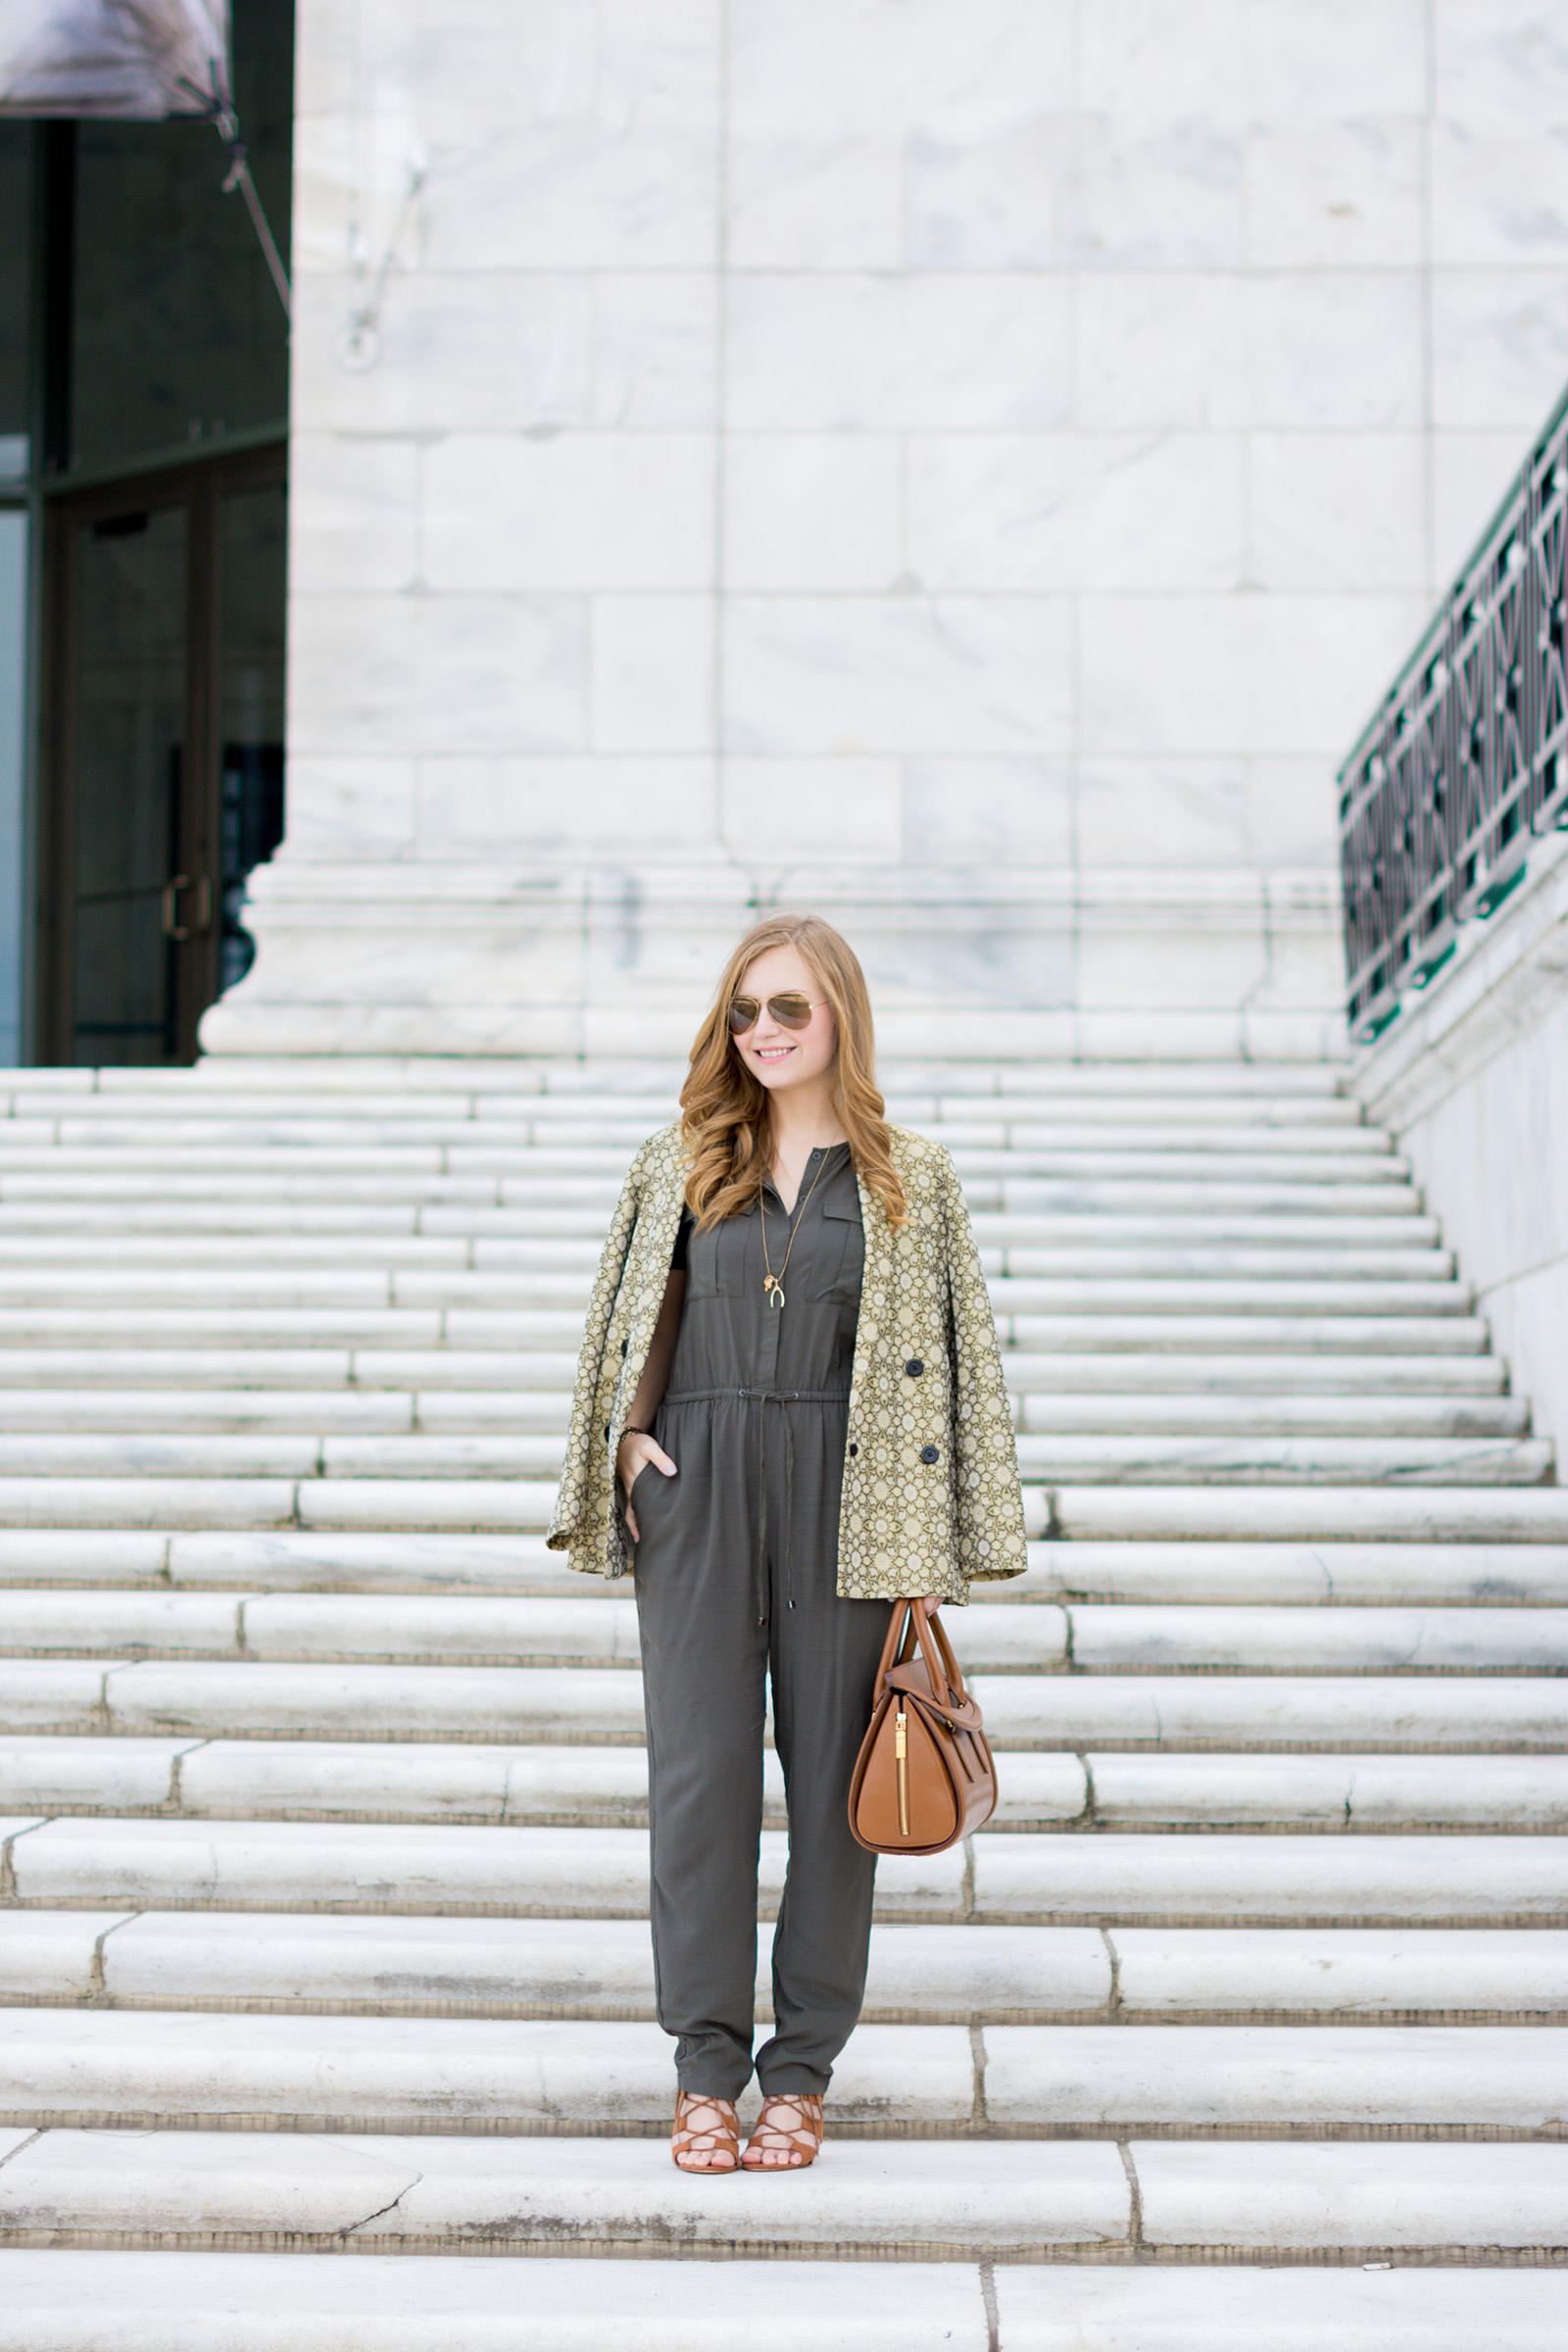 Green Jumpsuit SUNO Alexander McQueen Outfit